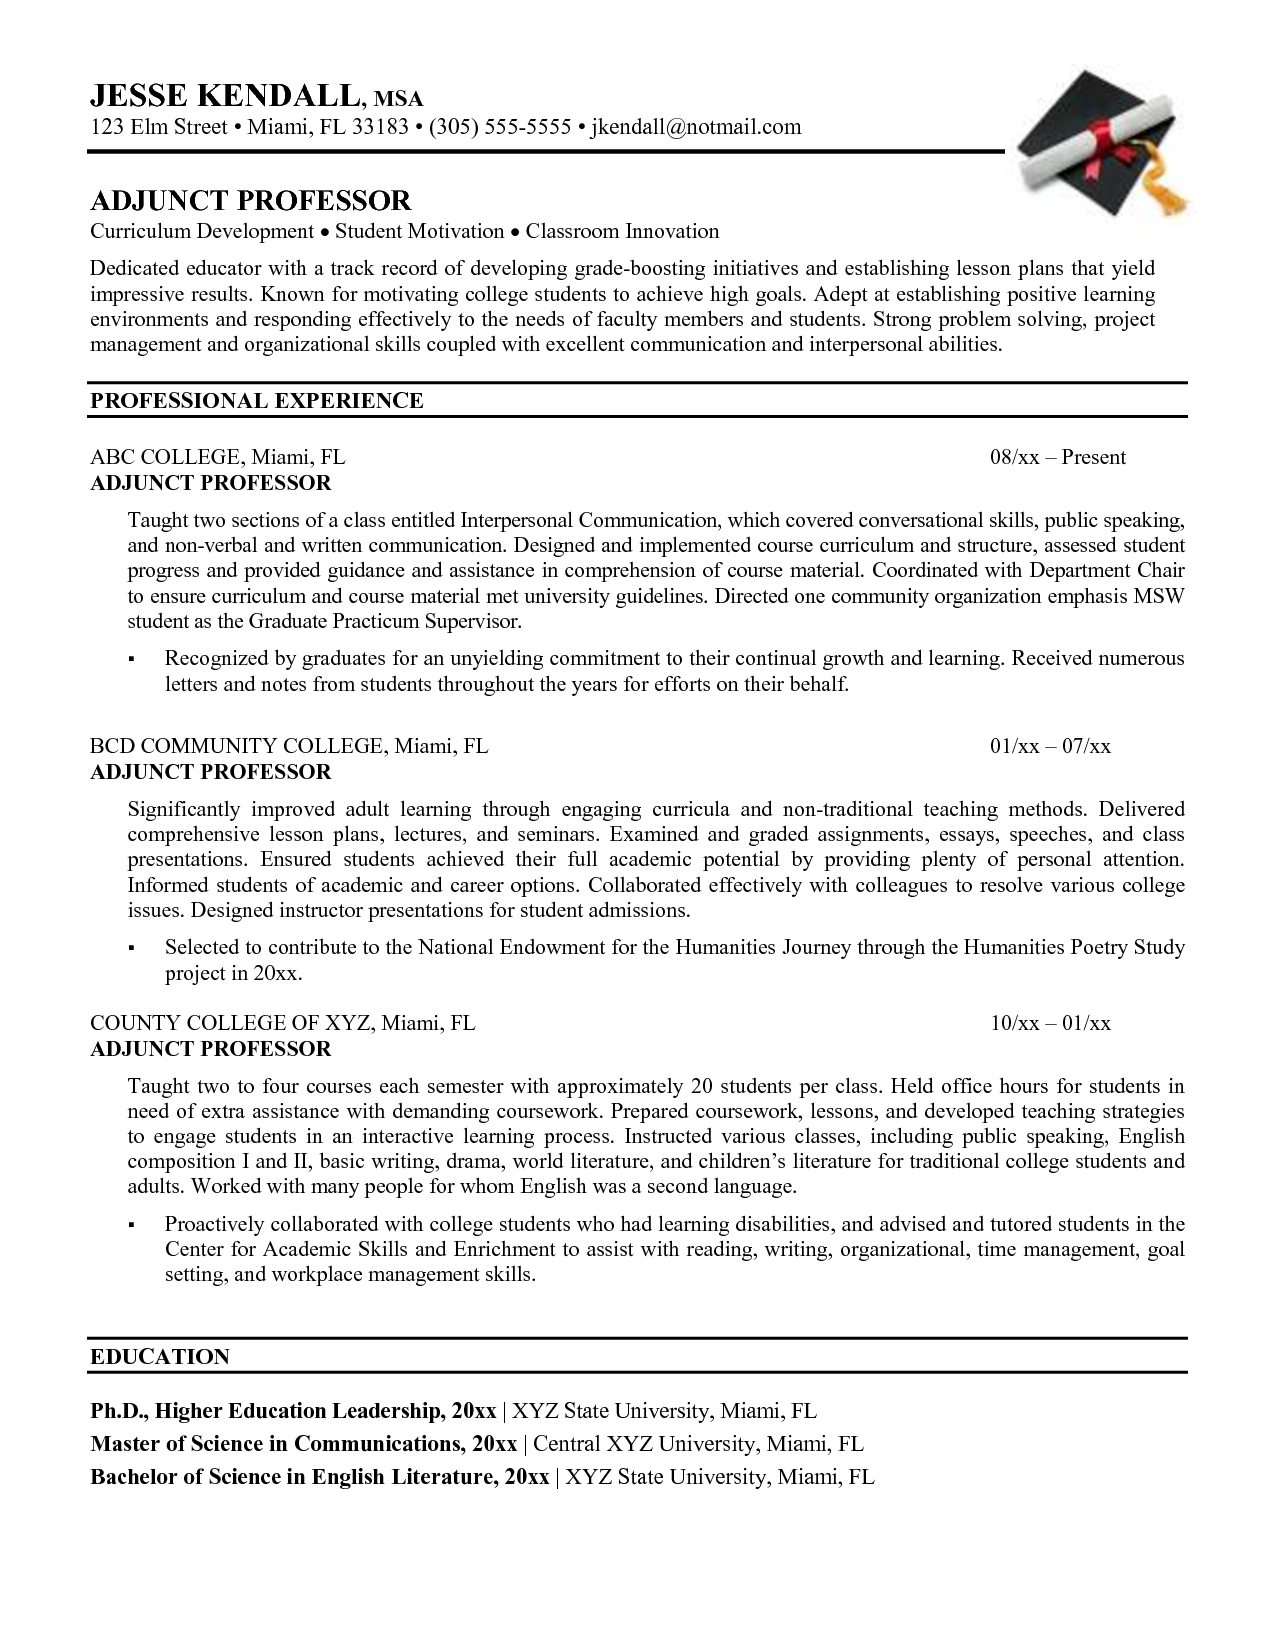 Simple Resume Templates Sample Resume For Faculty Position Engineering Adjunct Professor